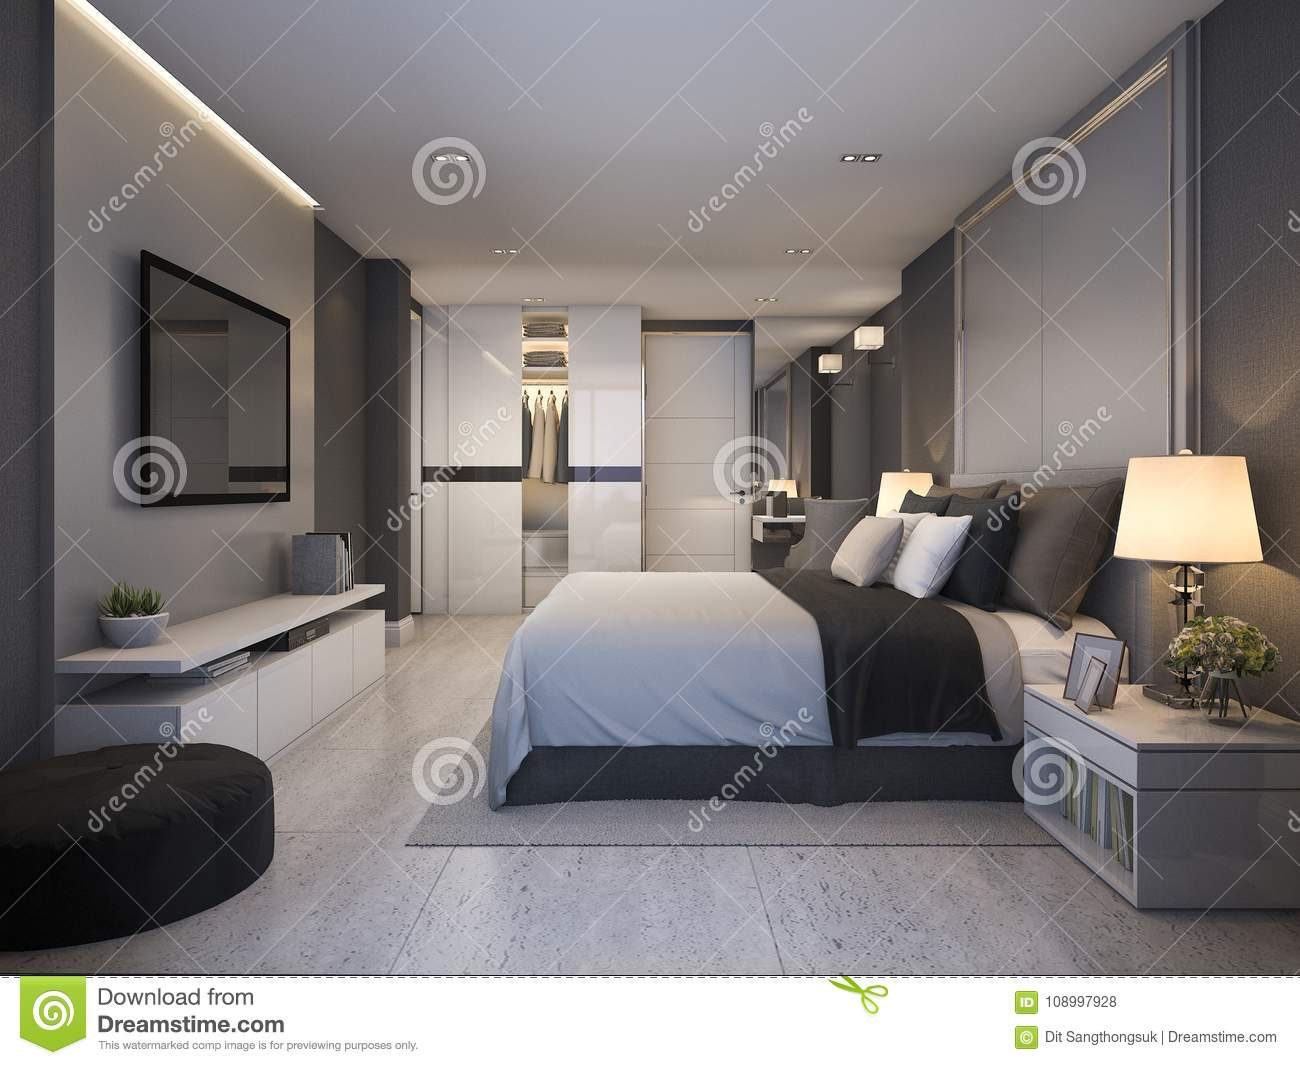 marvellous modern style hotel room bathroom 3d house free | 3d Rendering Beautiful Luxury Bedroom Suite In Hotel With ...